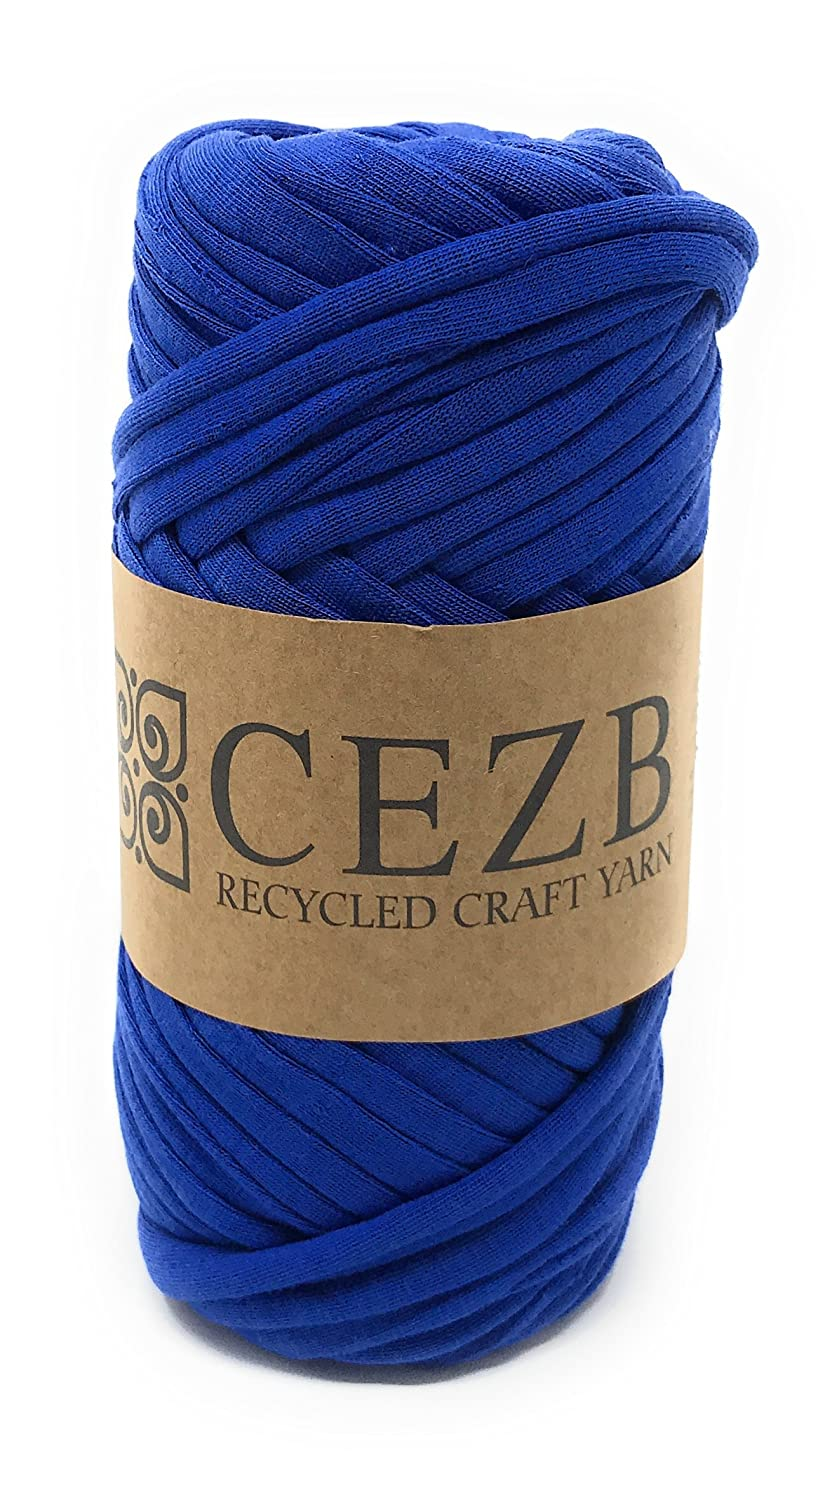 T-Shirt Yarn Bulky Fettuccini Zpagetti Style Elastic Strong Cloth T Shirt Trapillo Yarn Ball for Knitting Sewing Crocheting Bags Bowls DIY Handicraft and Home décor Projects -Small Size - Yarn#583